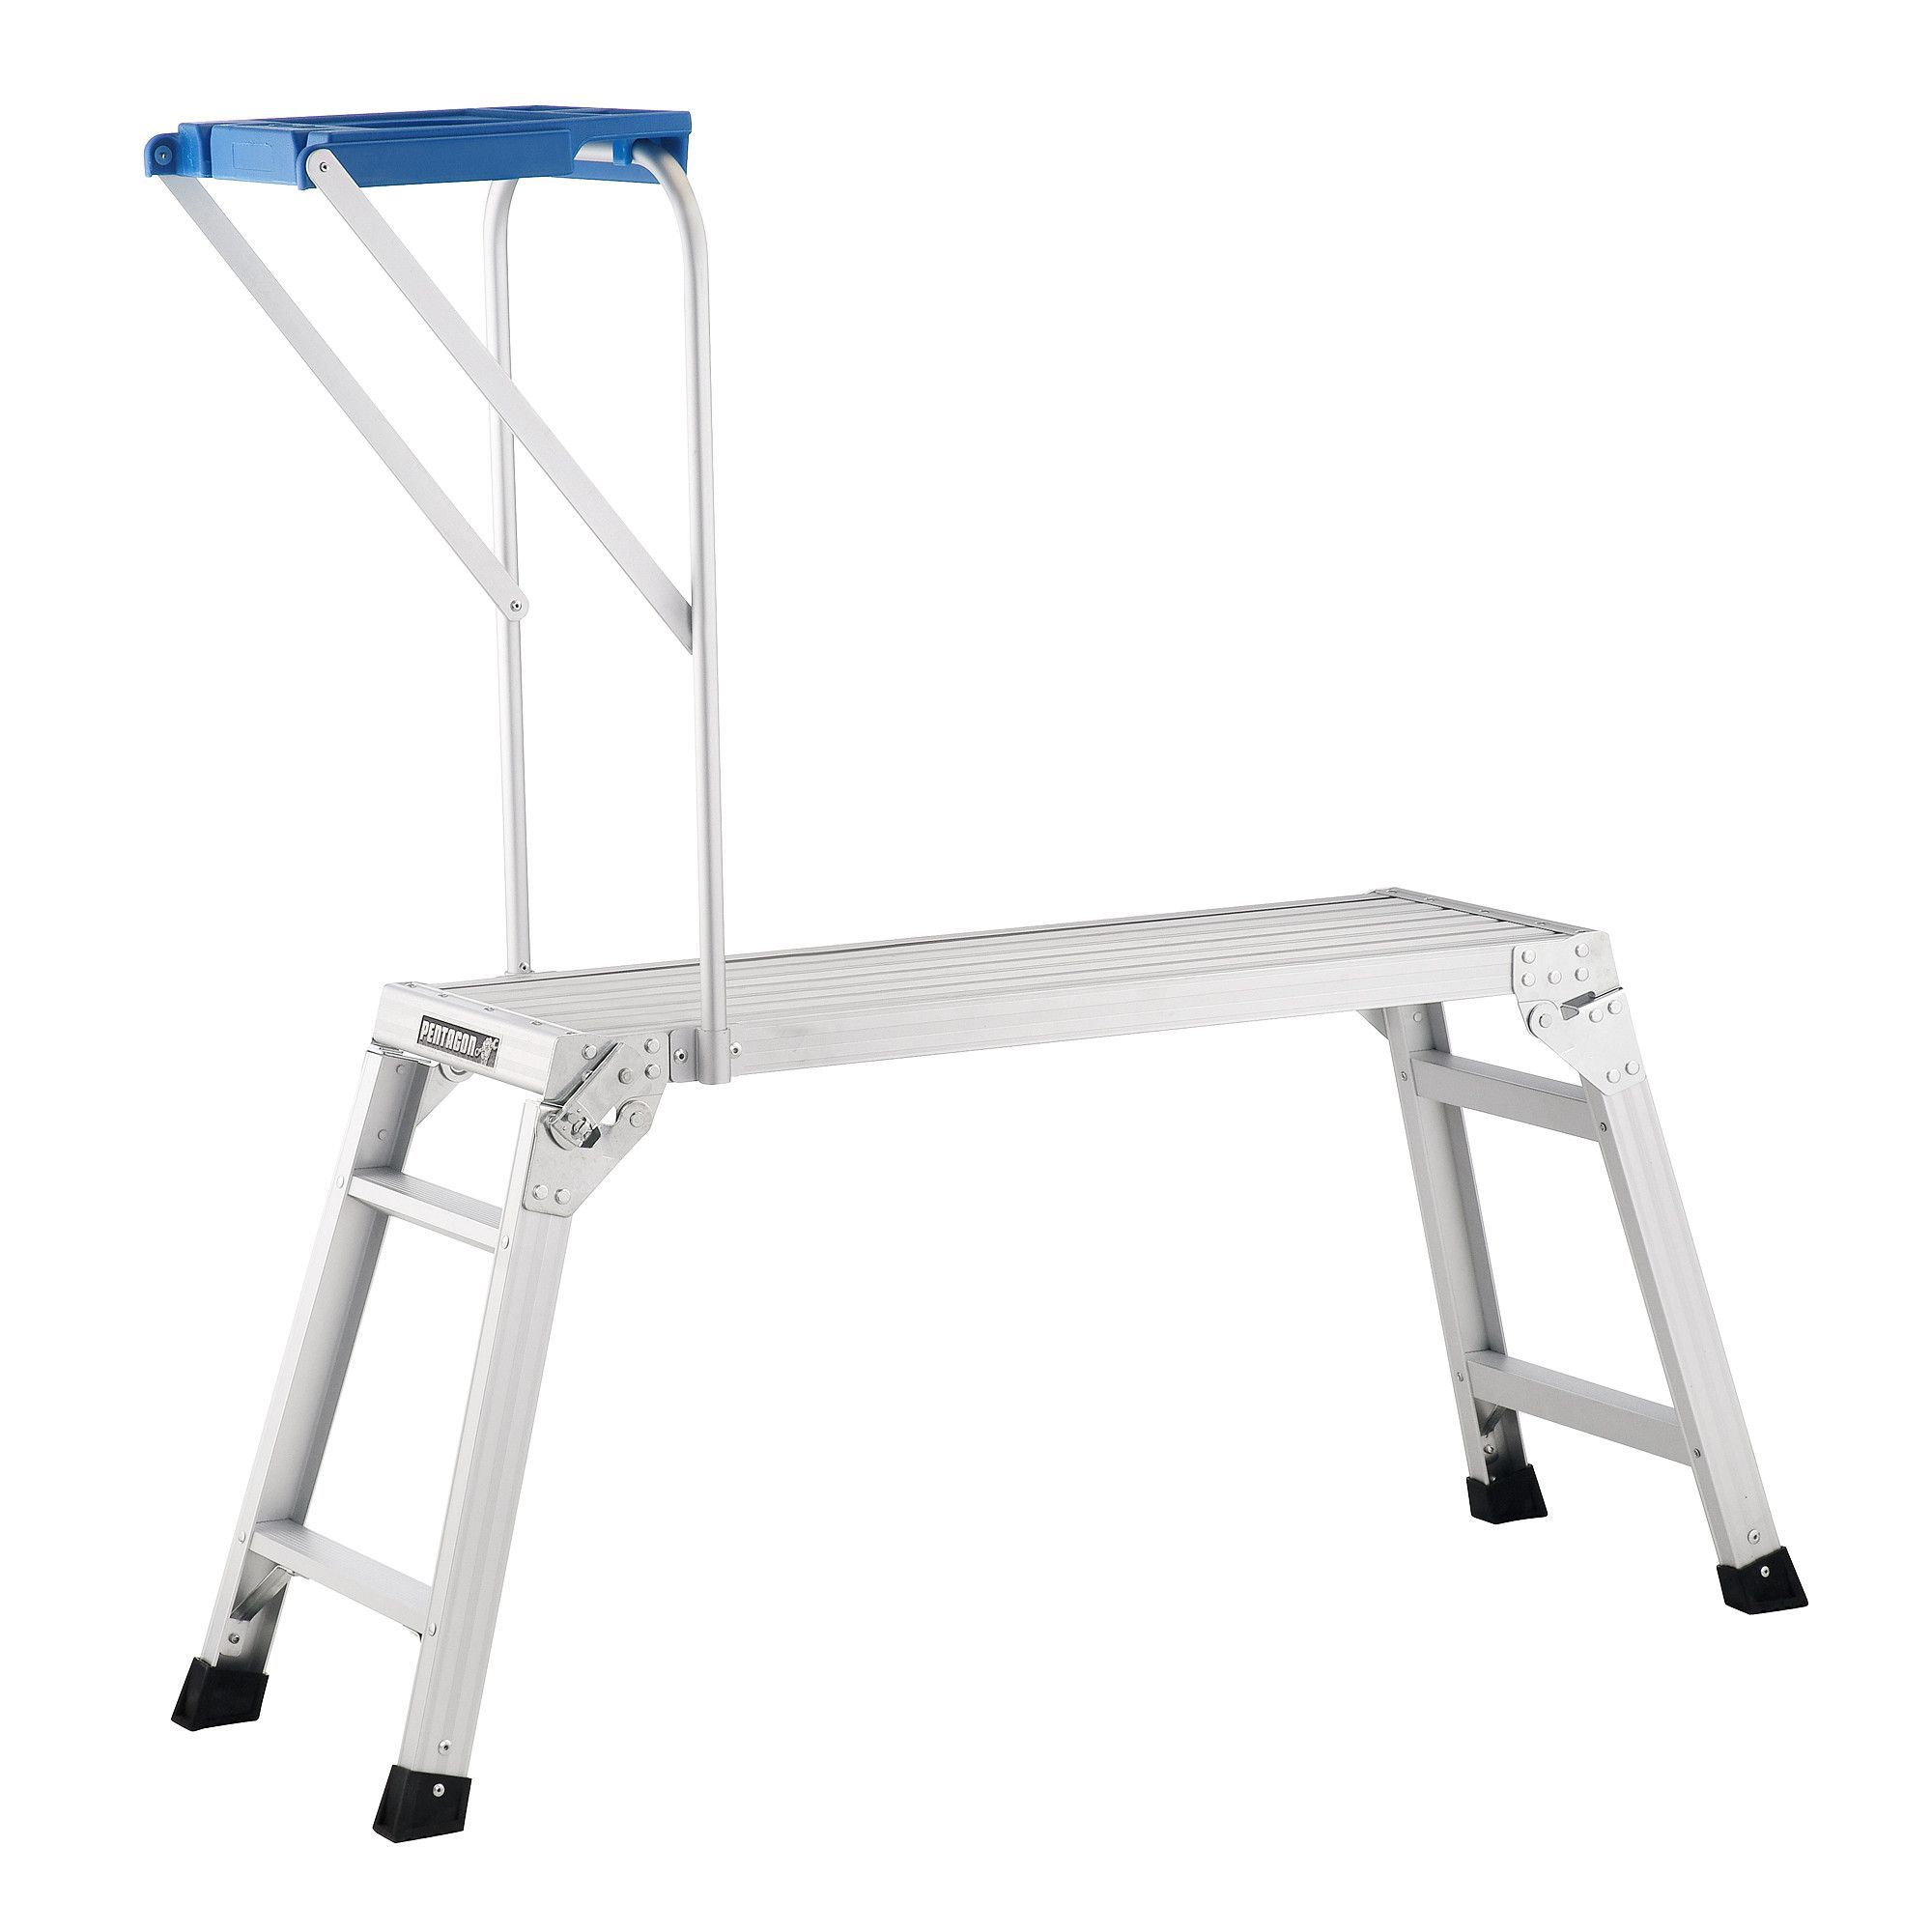 Pentagon tool professional aluminum drywall bench with